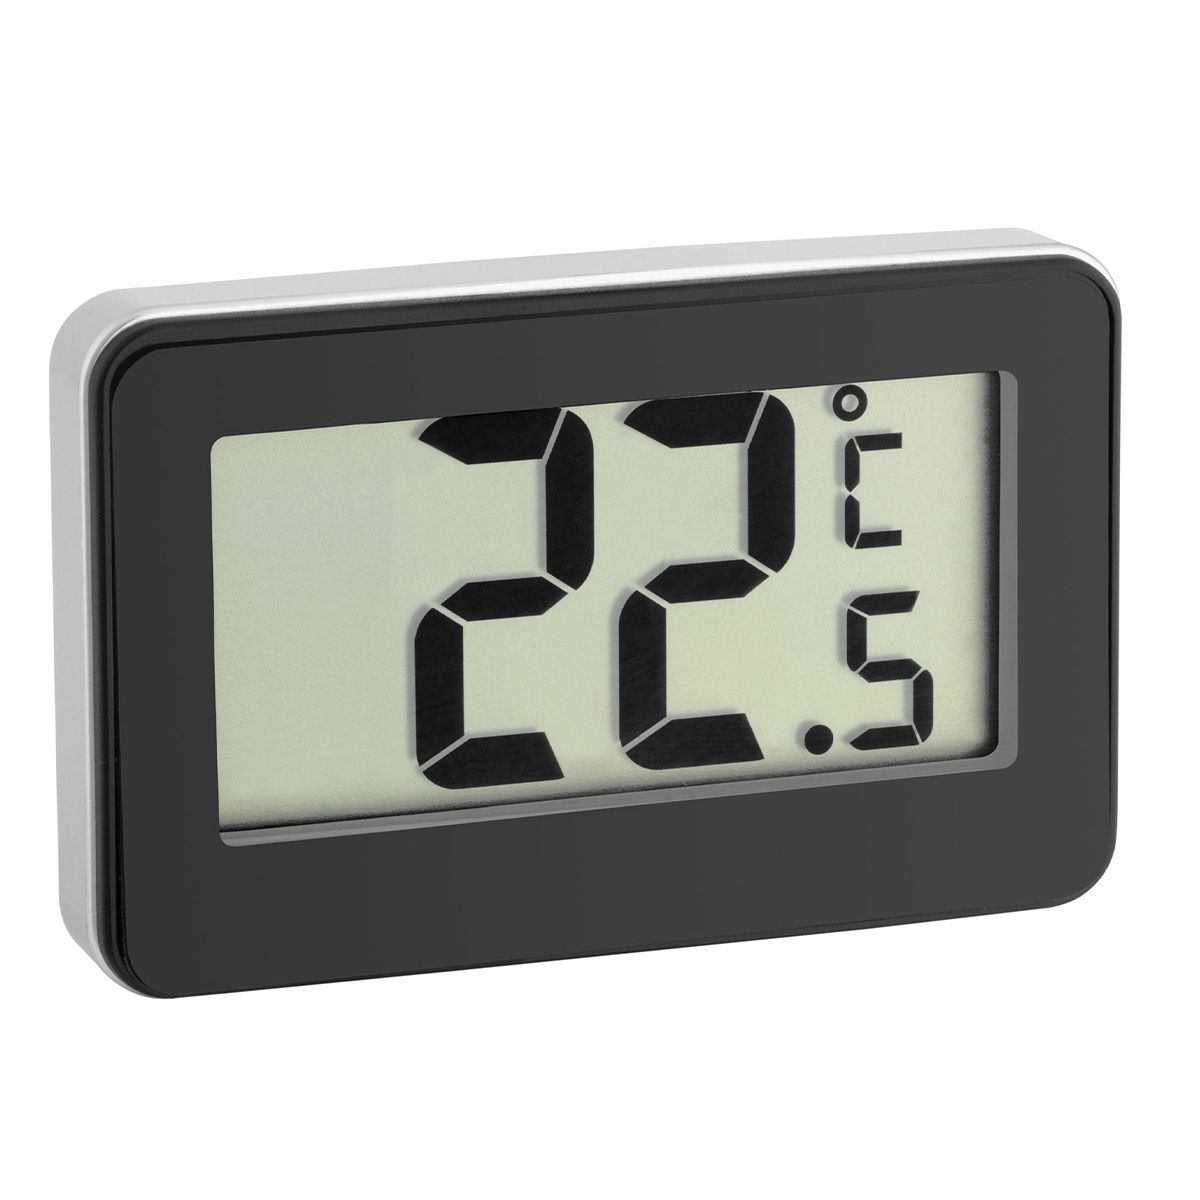 30-2028-01-digitales-thermometer-1200x1200px.jpg